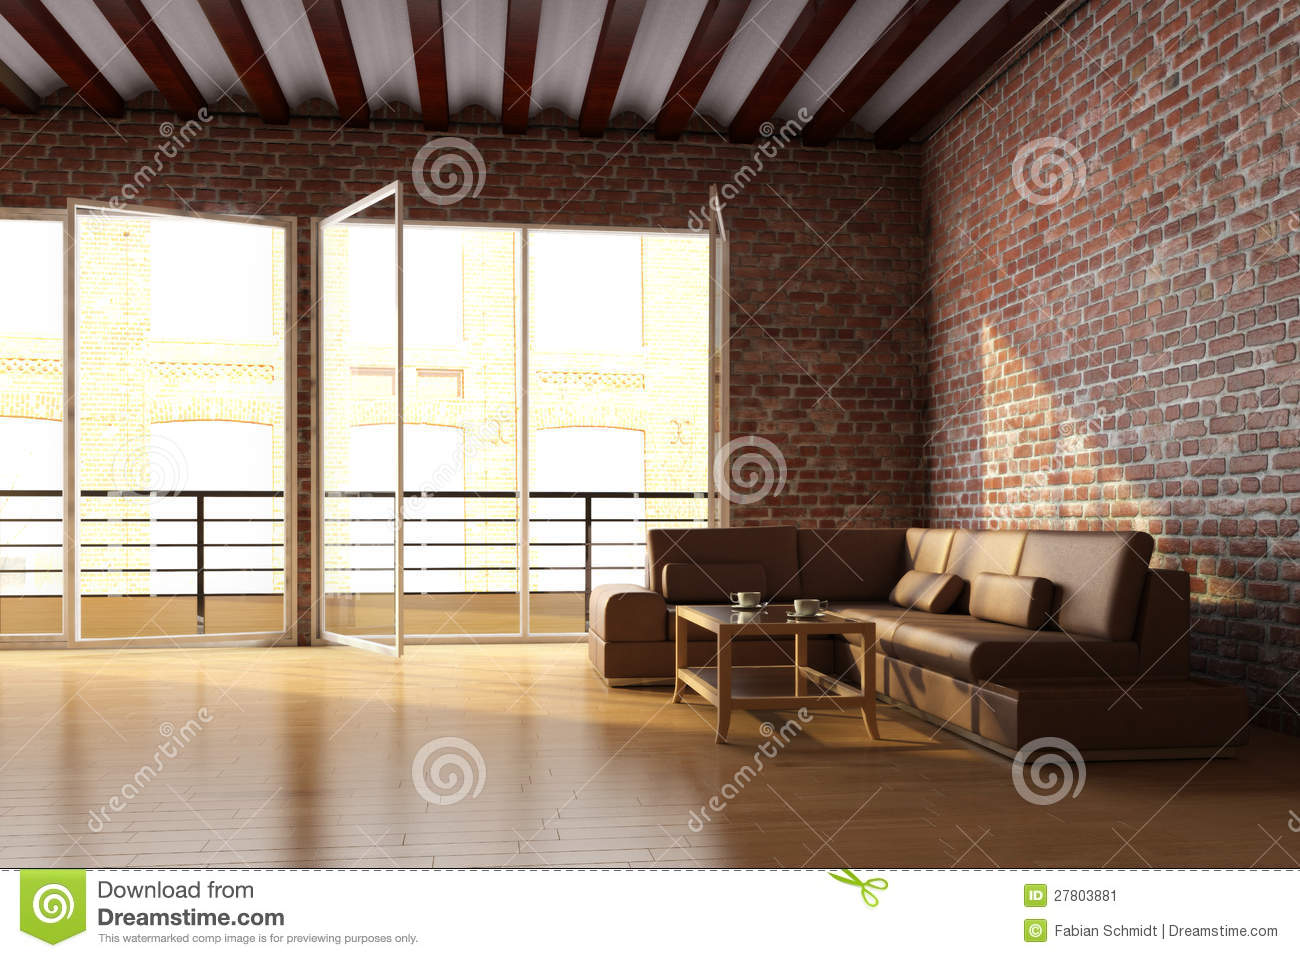 Loft interior with brick wall stock illustration image for Interior brick wall designs